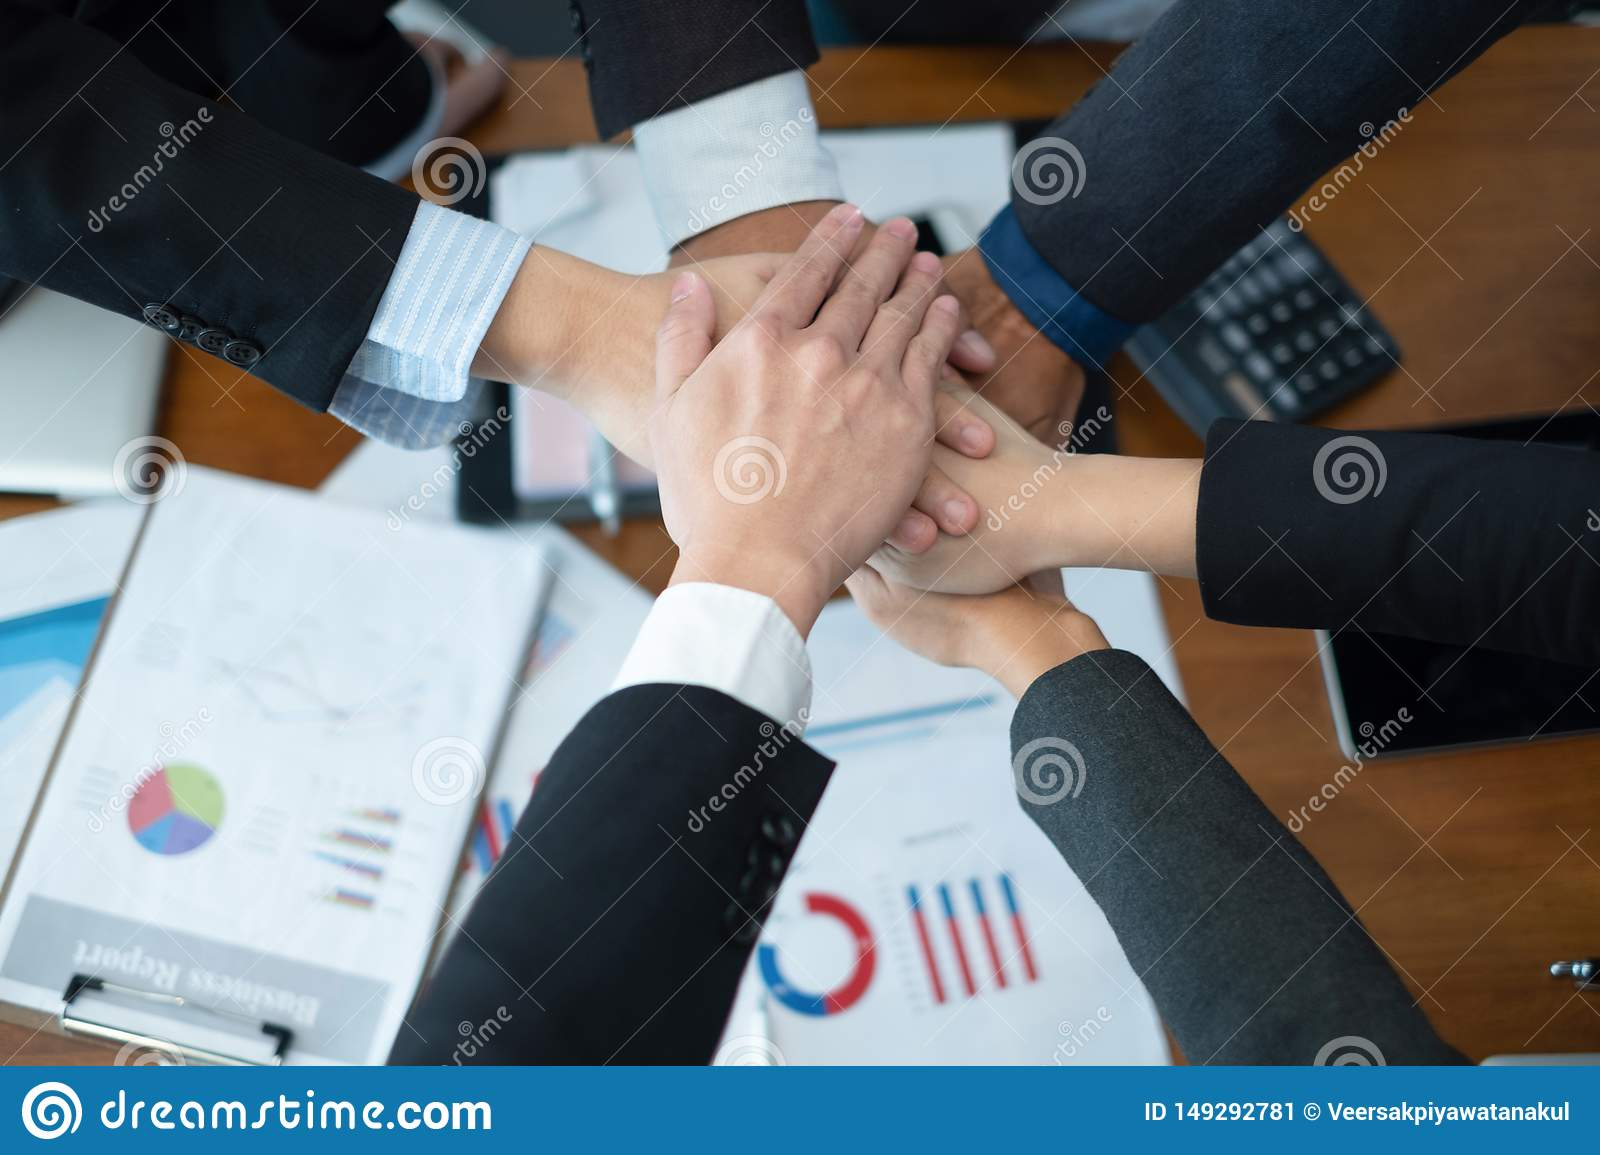 Business people put their hands together.businesspeople celebrating in office success deal business, business concept, business